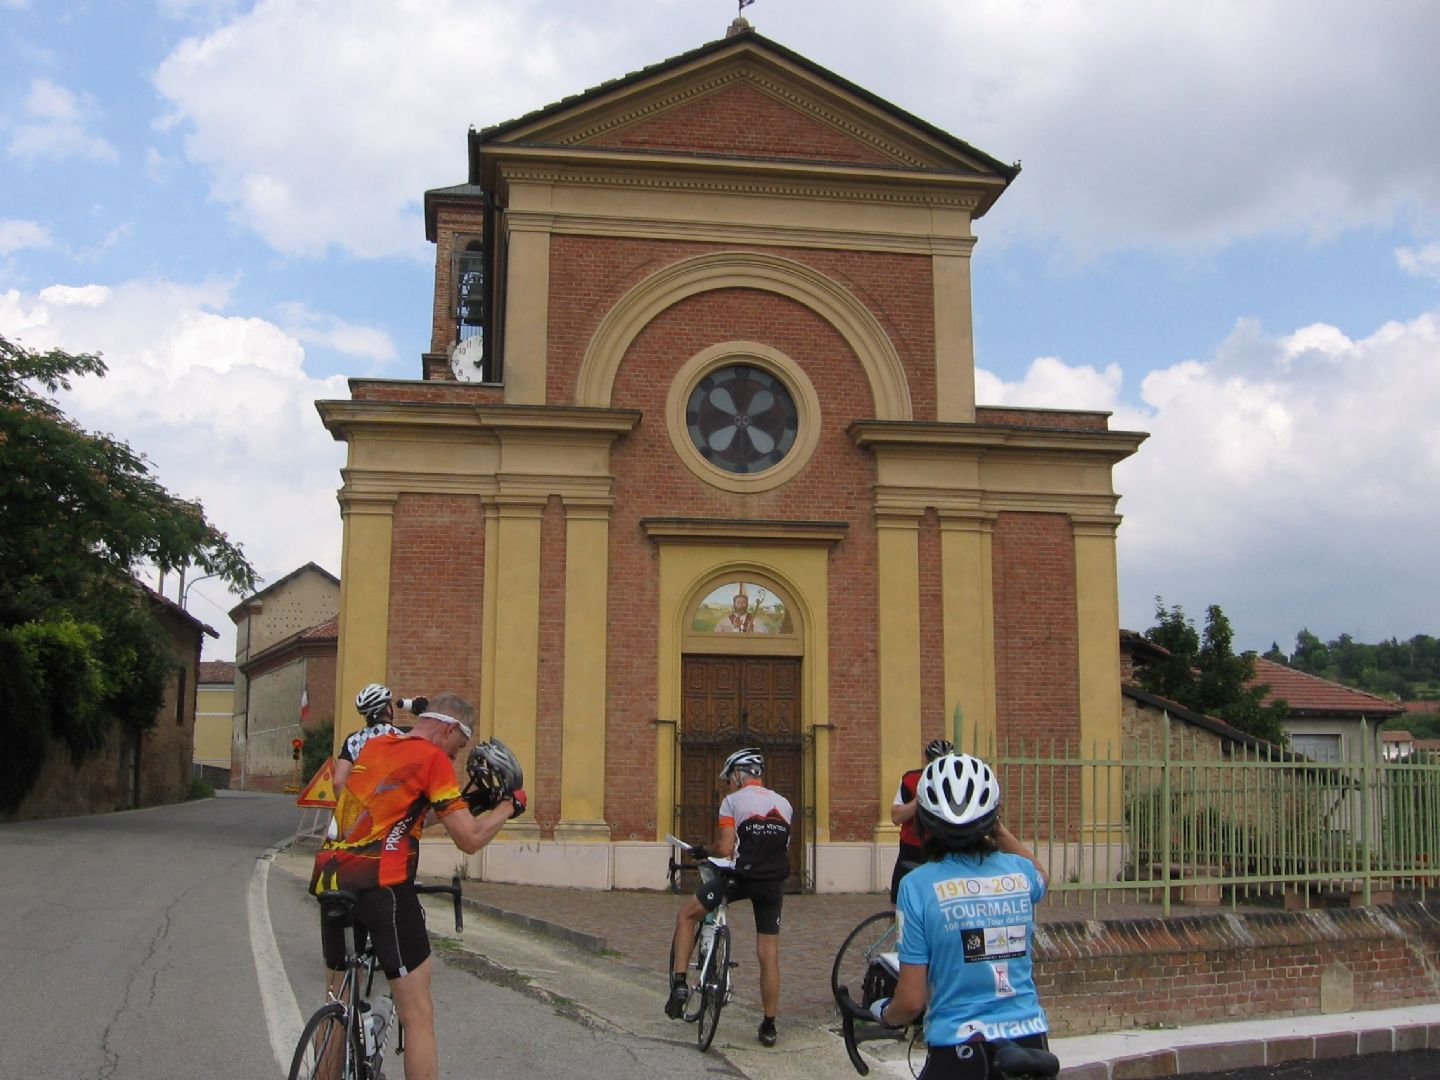 IMG_7917.JPG - Italy - Piemonte - Vineyards and Castles - Leisure Cycling Holiday - Guided - Italia Leisure and Family Cycling